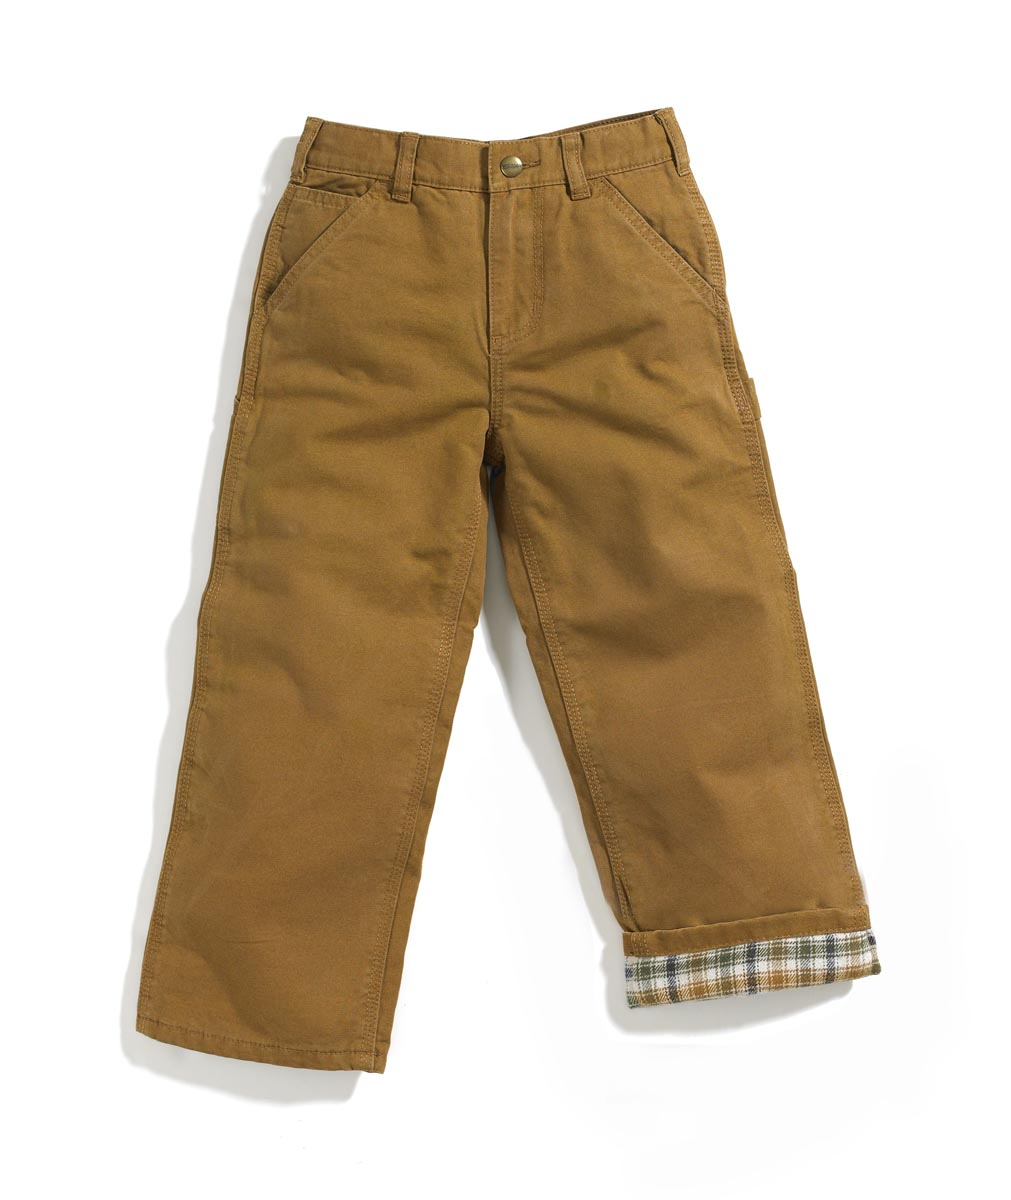 Carhartt Boys' Flannel Lined Dungaree Pant sizes 4-7